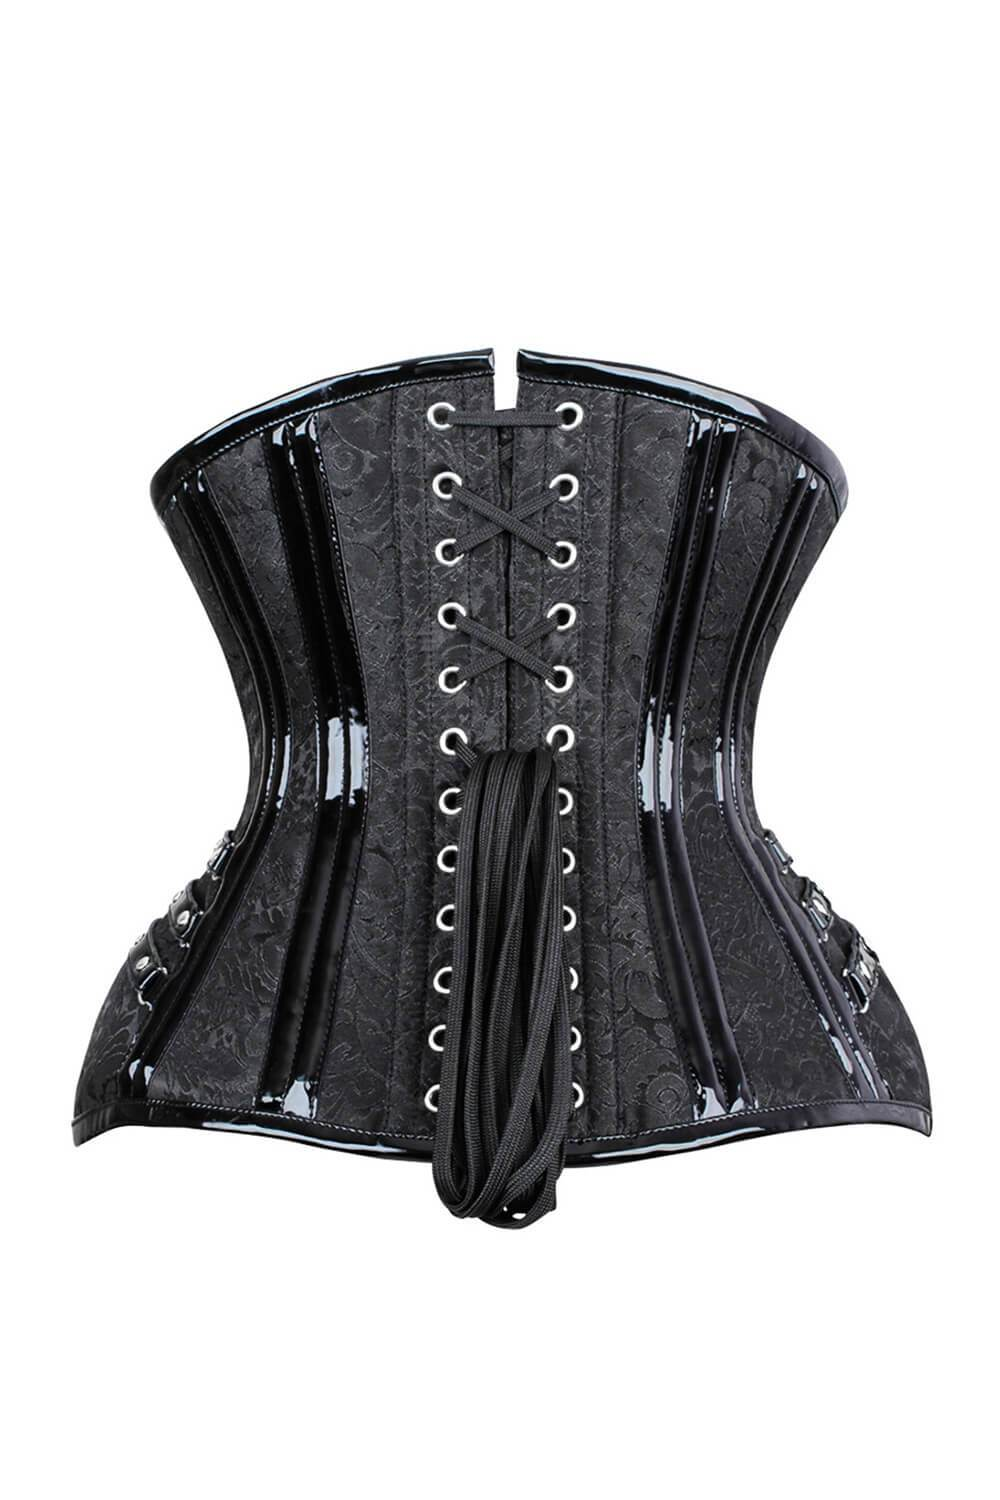 Caress New Curvy Brocade Waist Trainer with Front Zipper